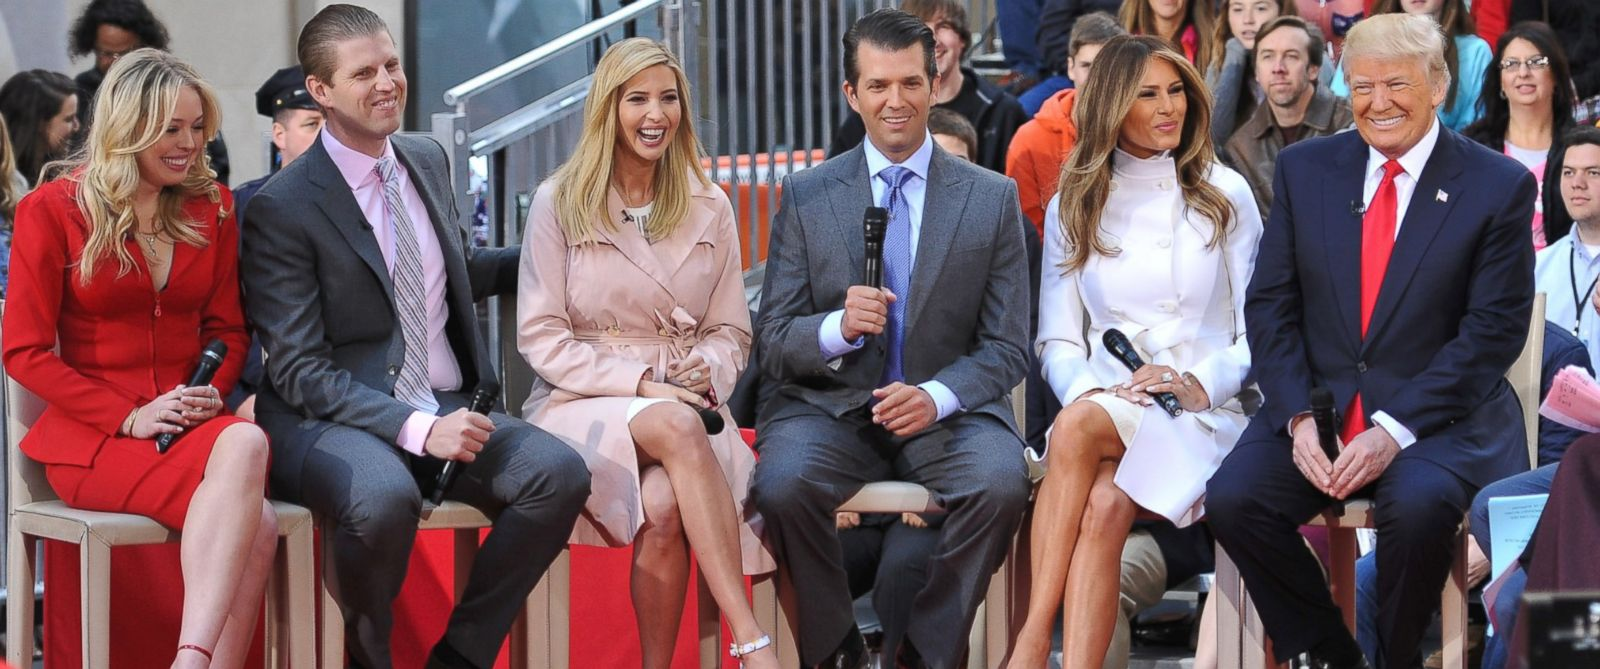 Image result for photos of trump family in white house